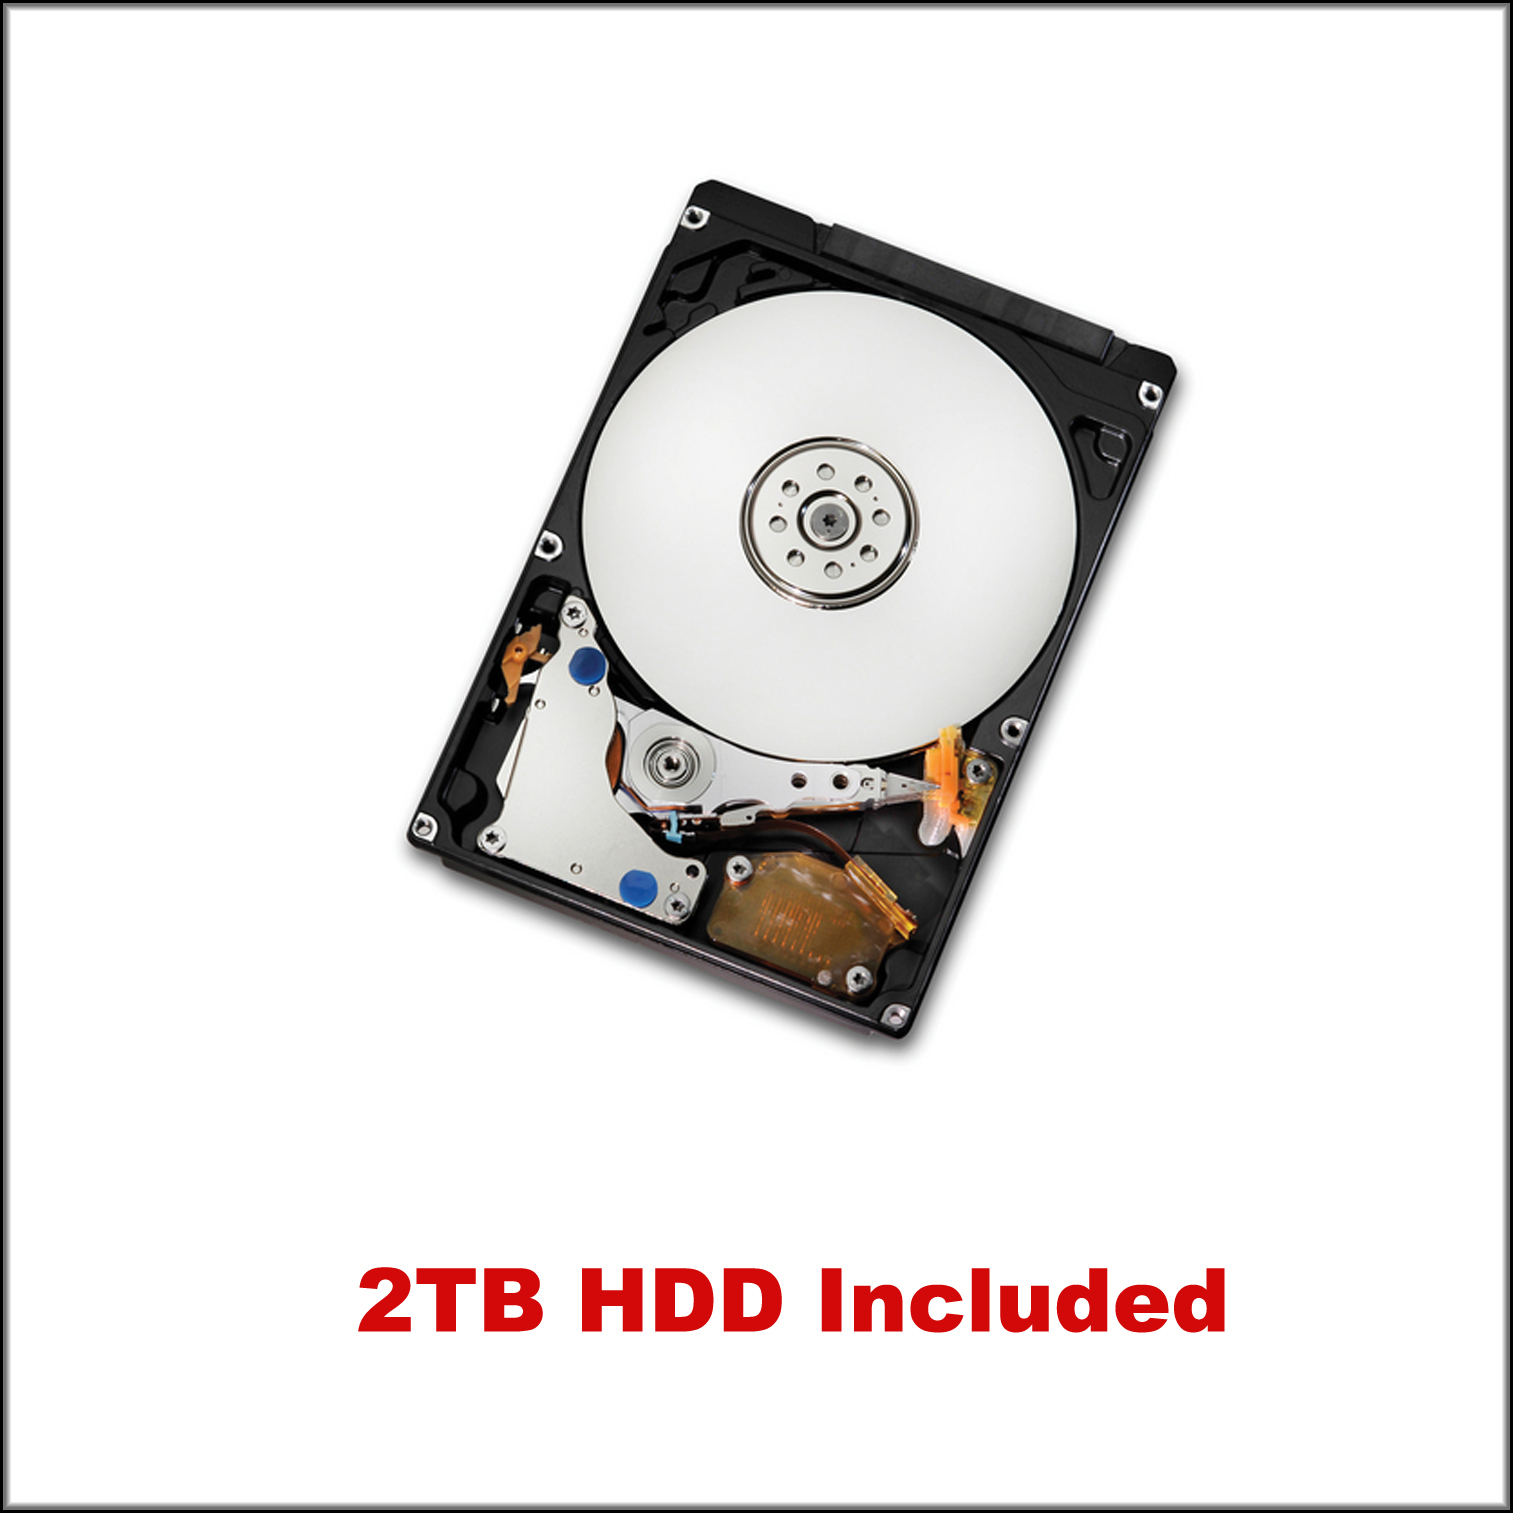 With 2TB HDD